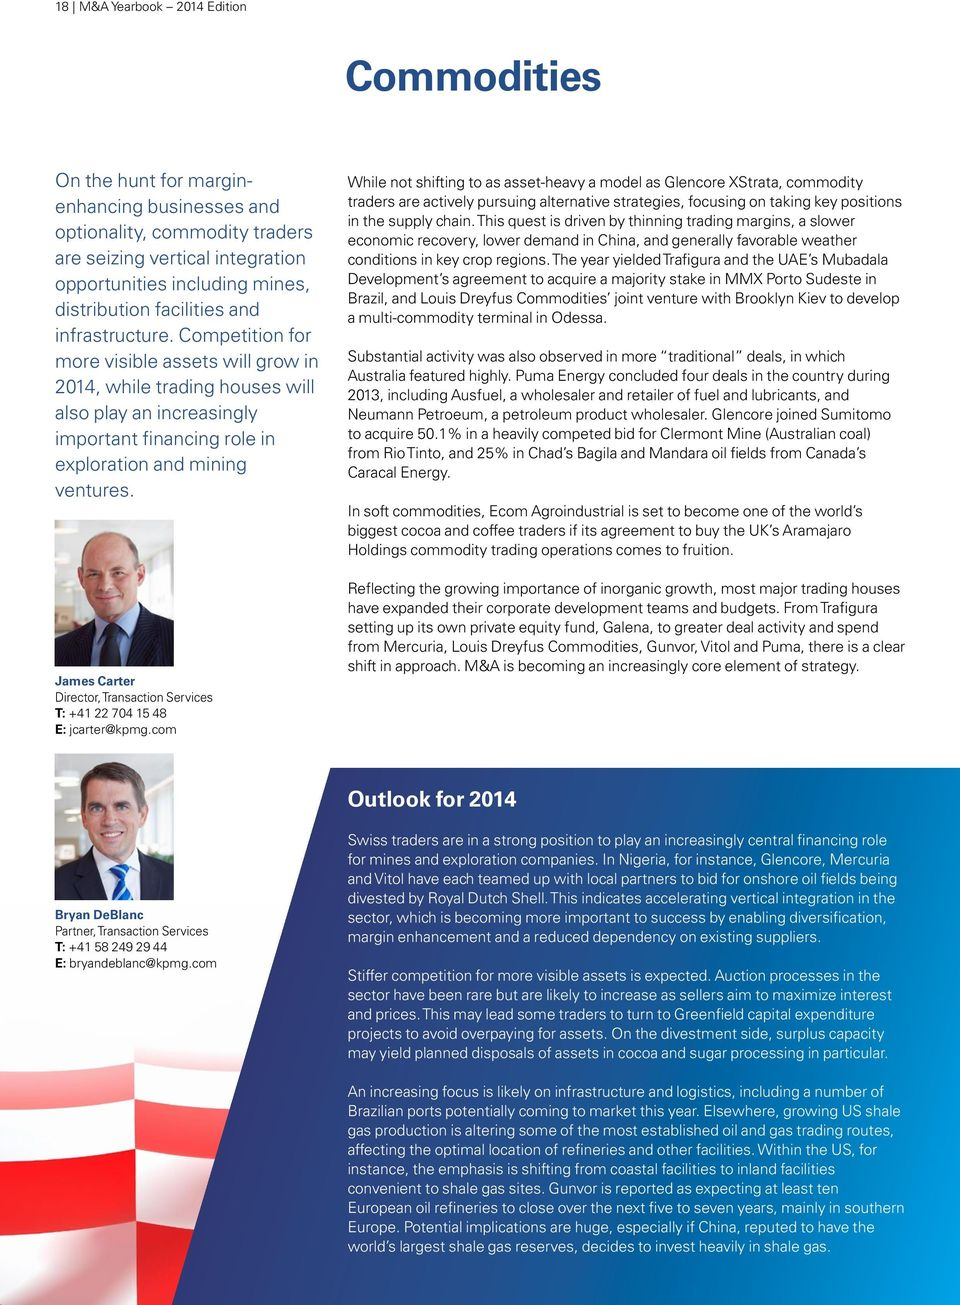 M&A Yearbook Edition  KPMG s overview of mergers and acquisitions in